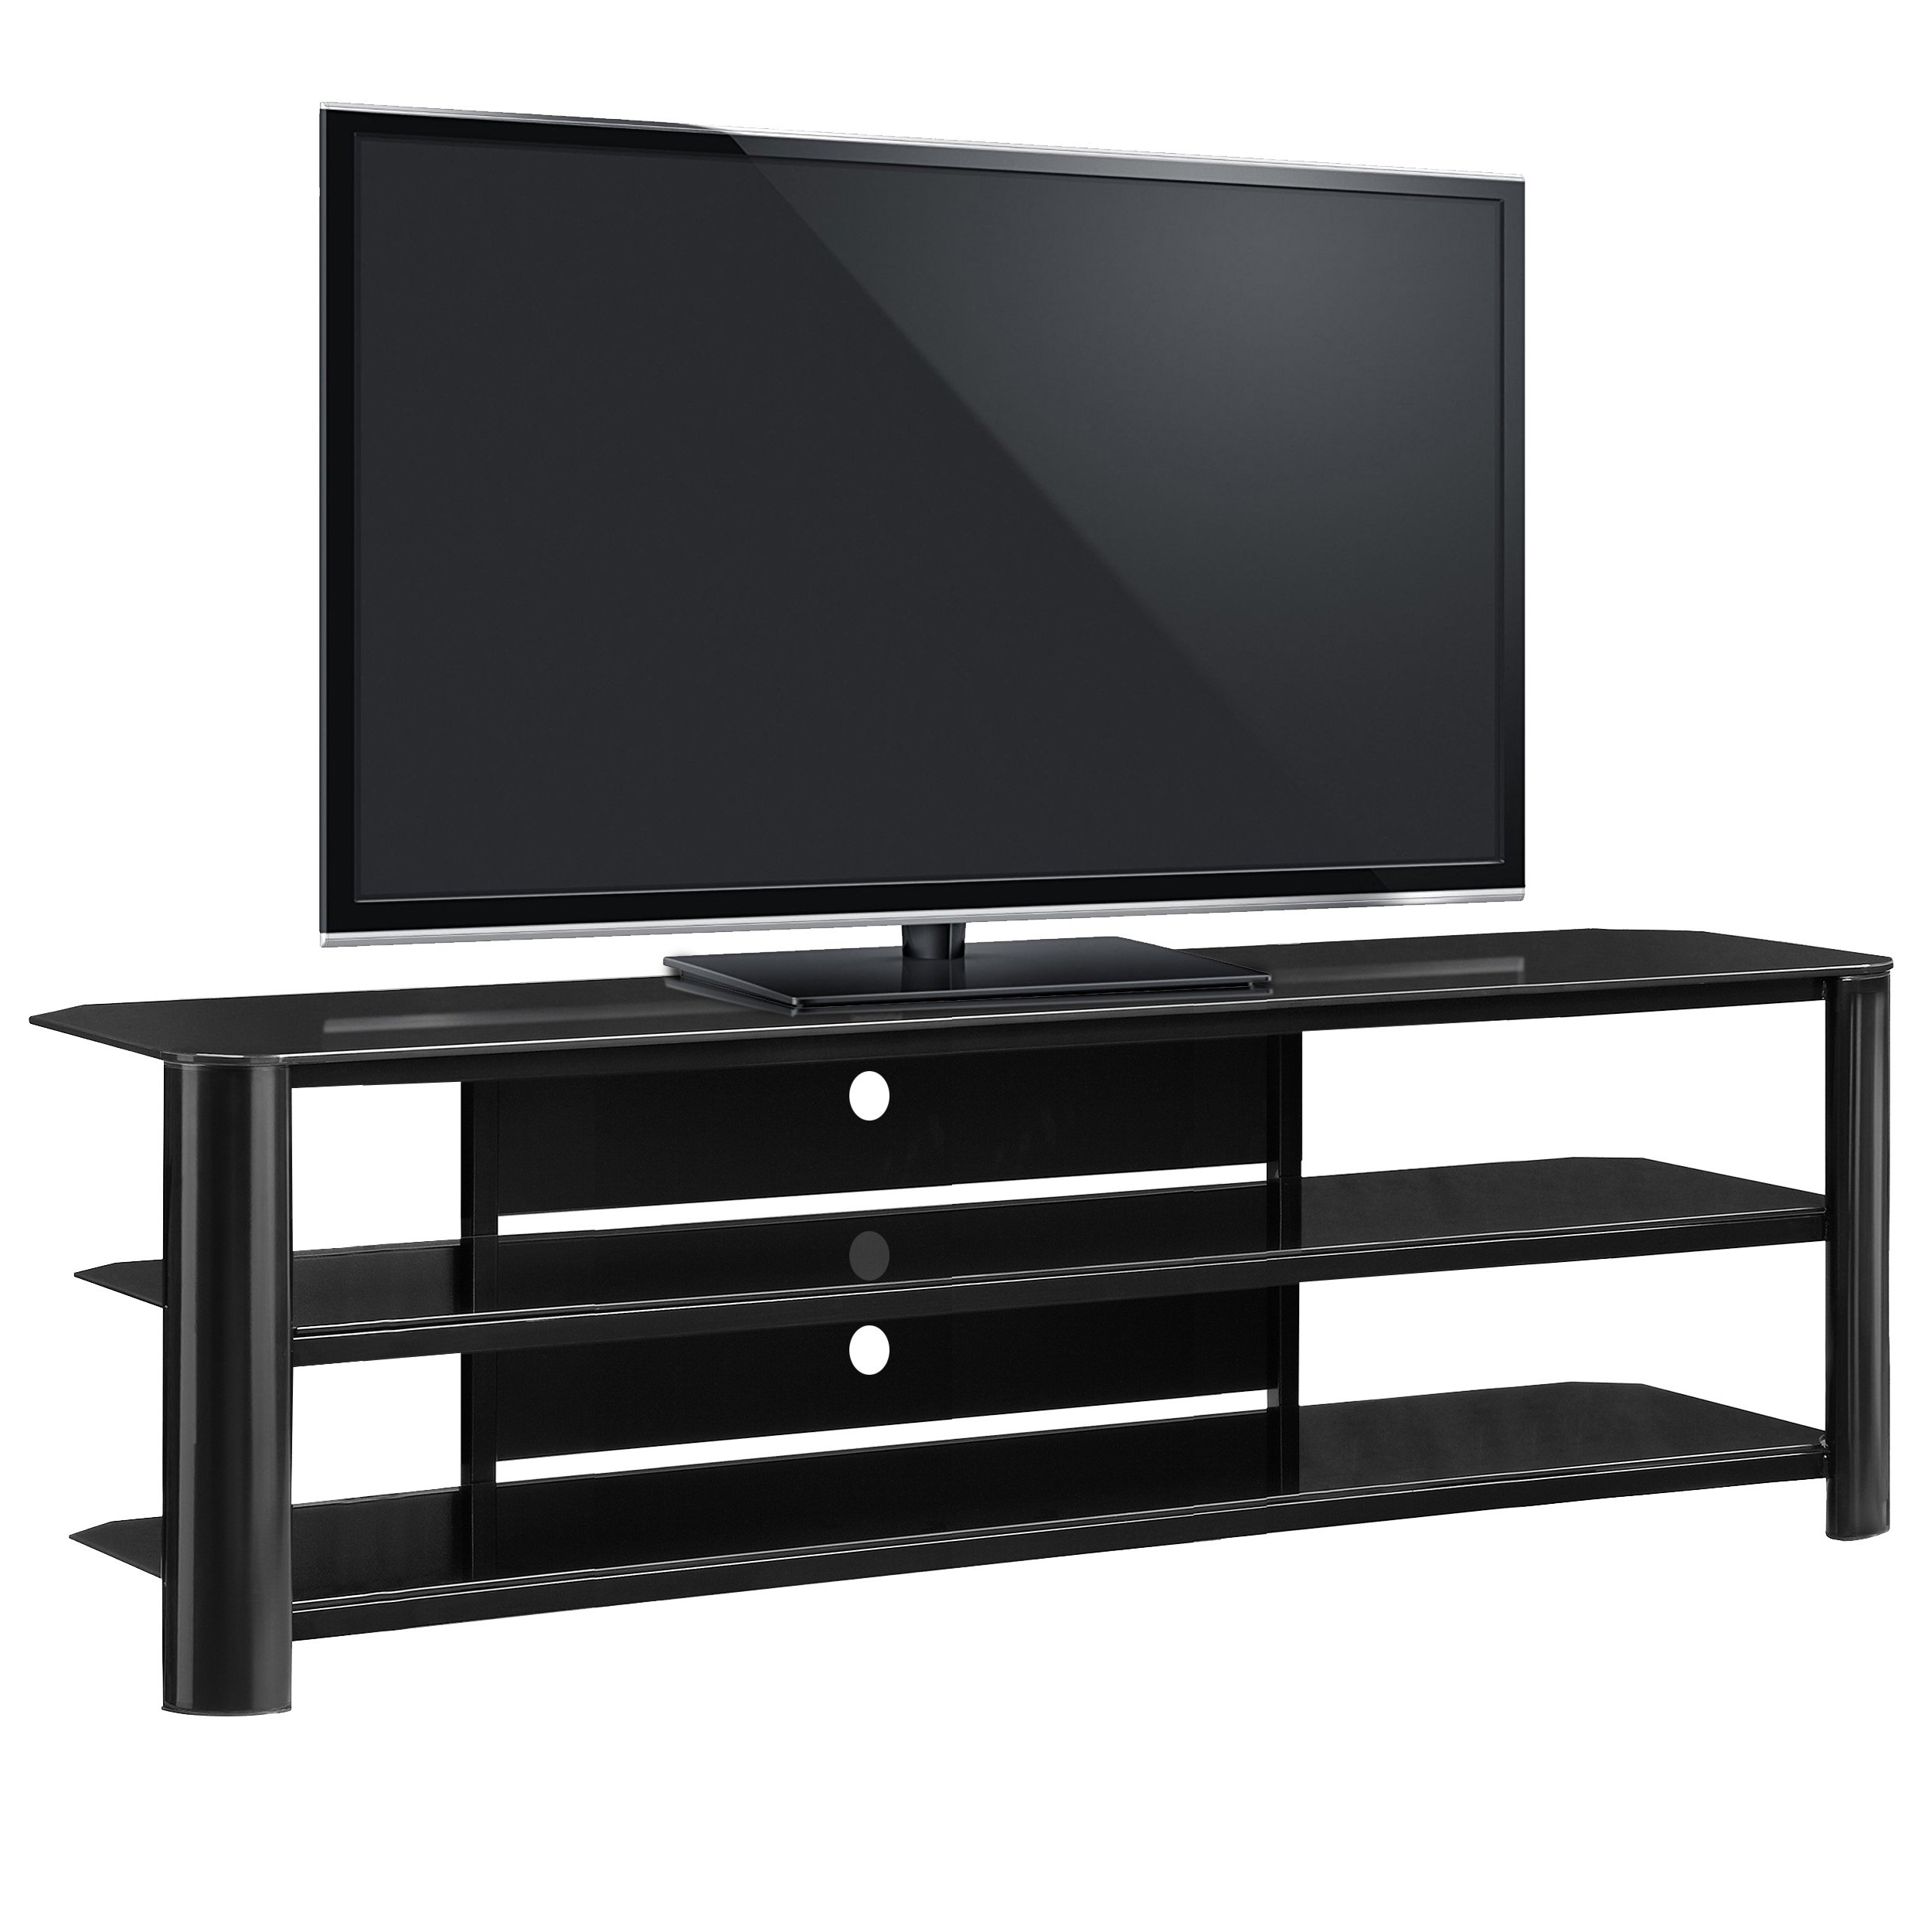 Shop Fold 'n' Snap Oxford Ez Black Innovex Tv Stand – Free Shipping Inside Oxford 84 Inch Tv Stands (View 12 of 20)